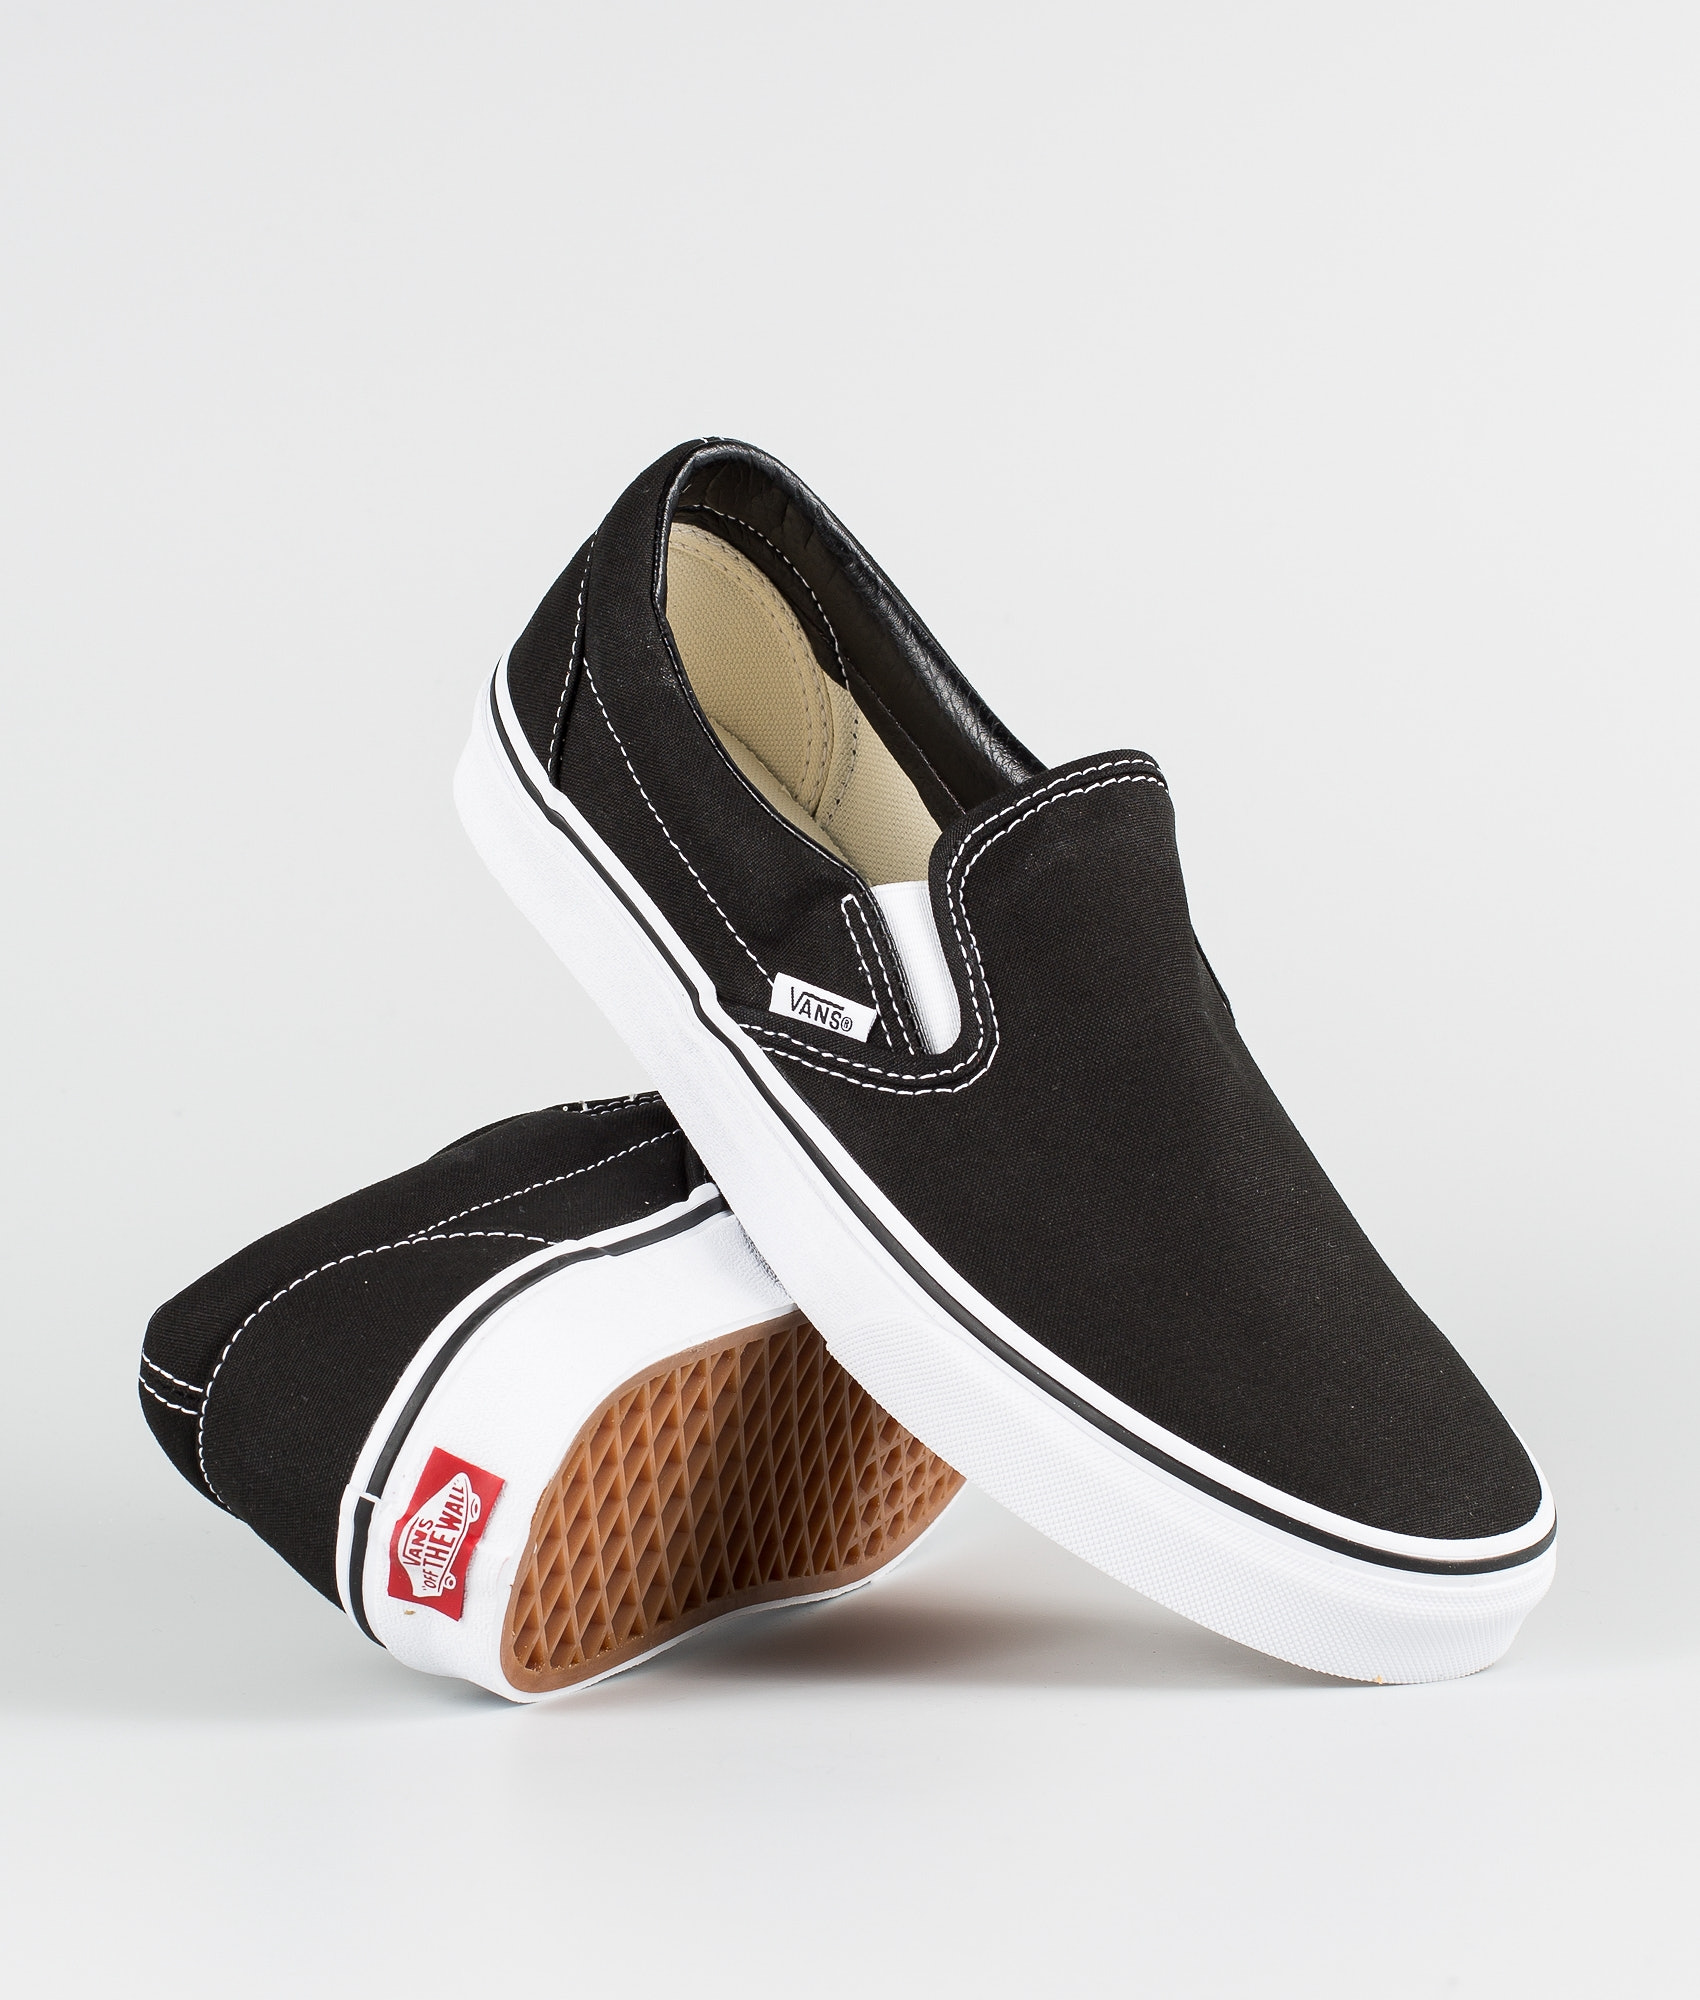 689149268a Vans Classic Slip-On Shoes Black Pewter Checkerboard - Ridestore.com